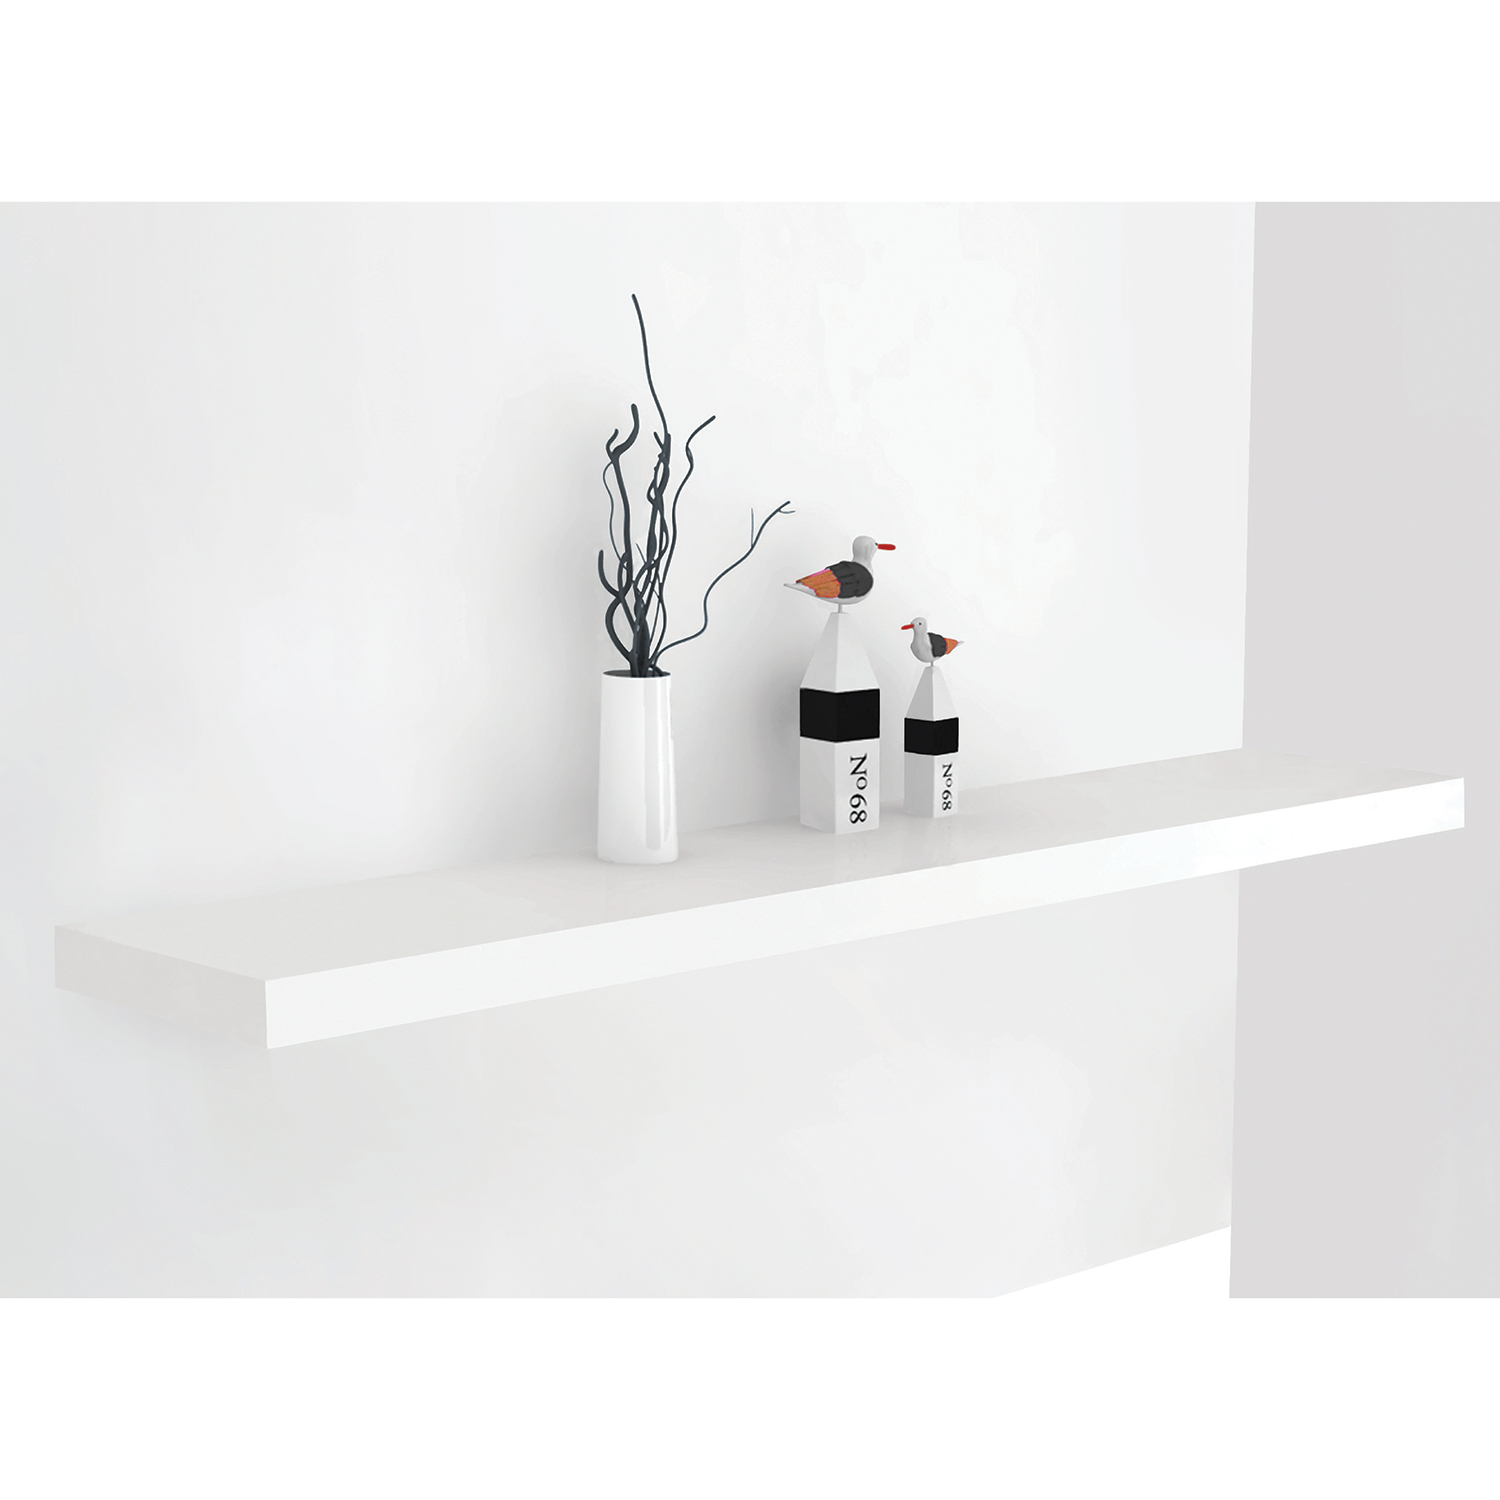 bergen white floating shelf home more wall decor accessories res black bathroom sink stand lack shelving unit for prepac media whole units bunnings garage storage cupboards